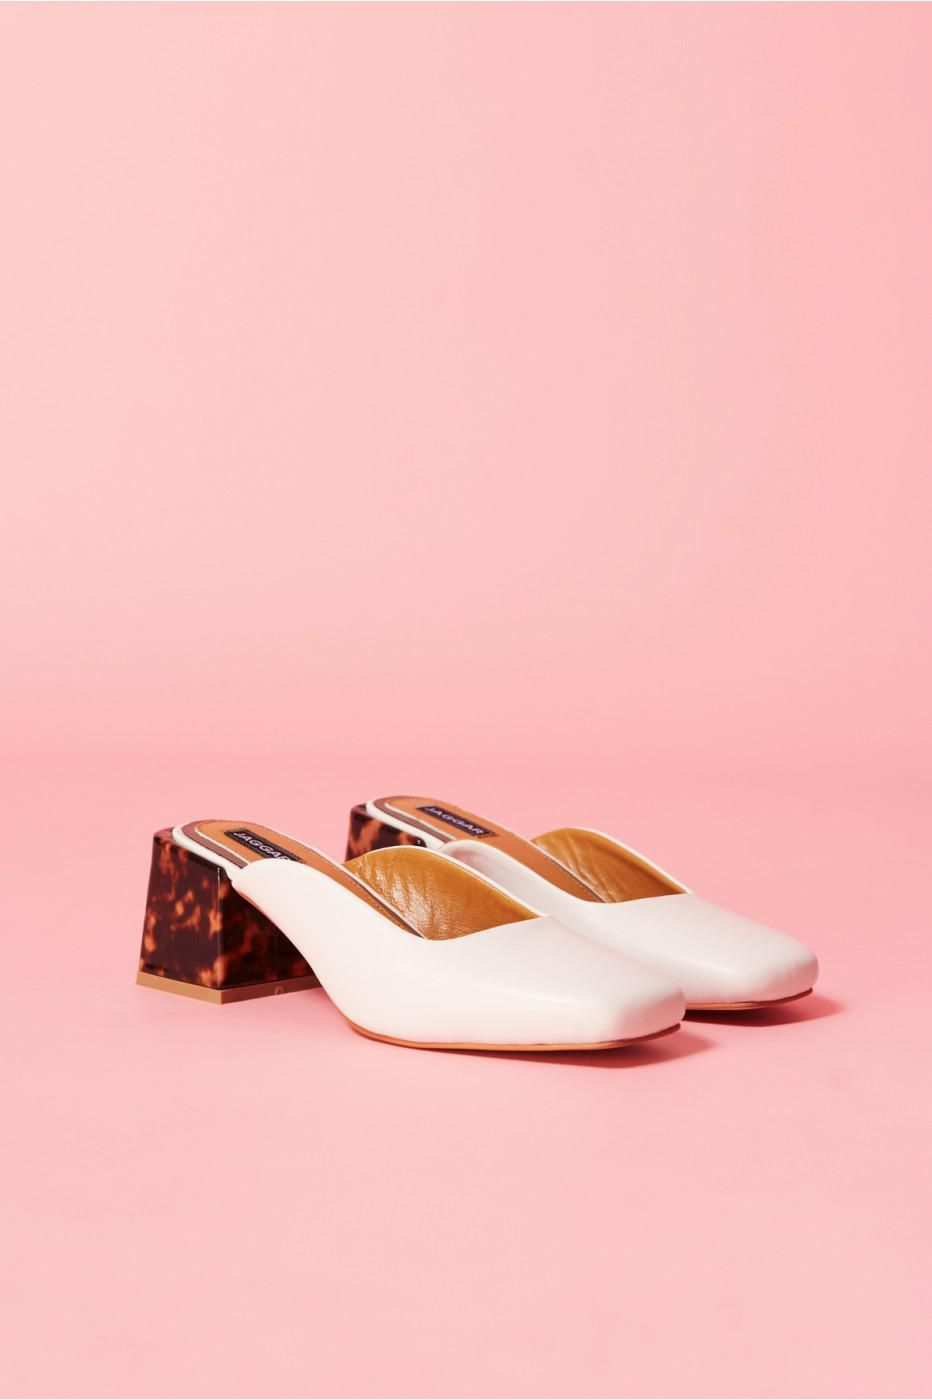 79b0b7ed9 Image result for JAGGAR Women s Pulse Square Toe Mid-Heel Leather Mules